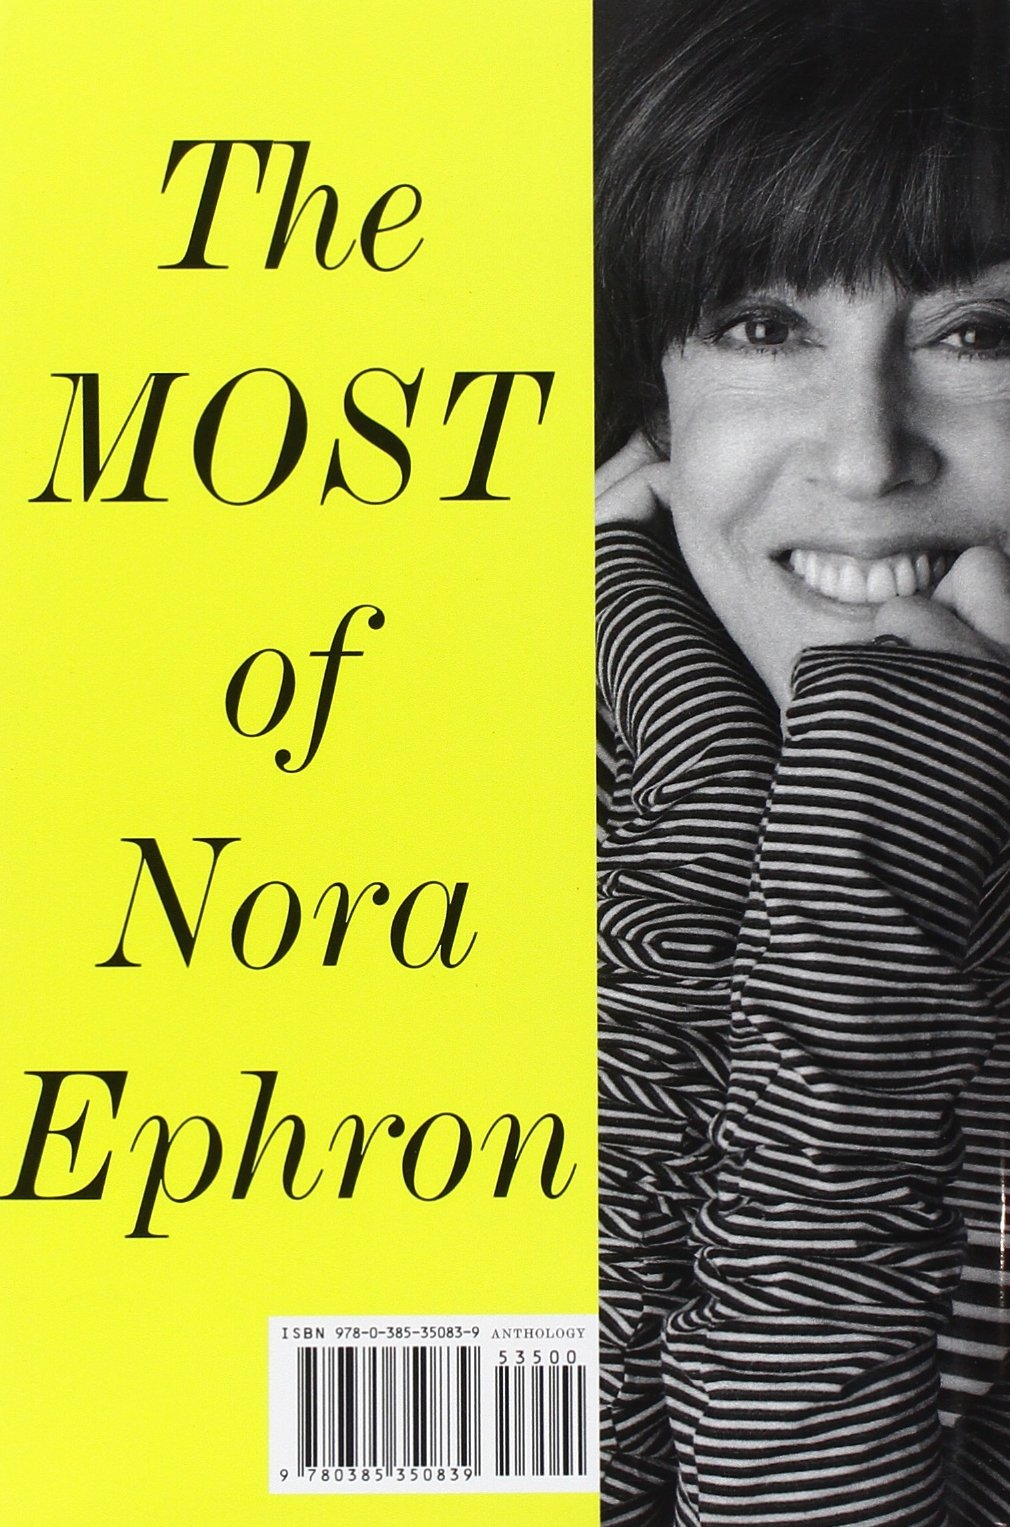 com the most of nora ephron 9780385350839 nora ephron  com the most of nora ephron 9780385350839 nora ephron books